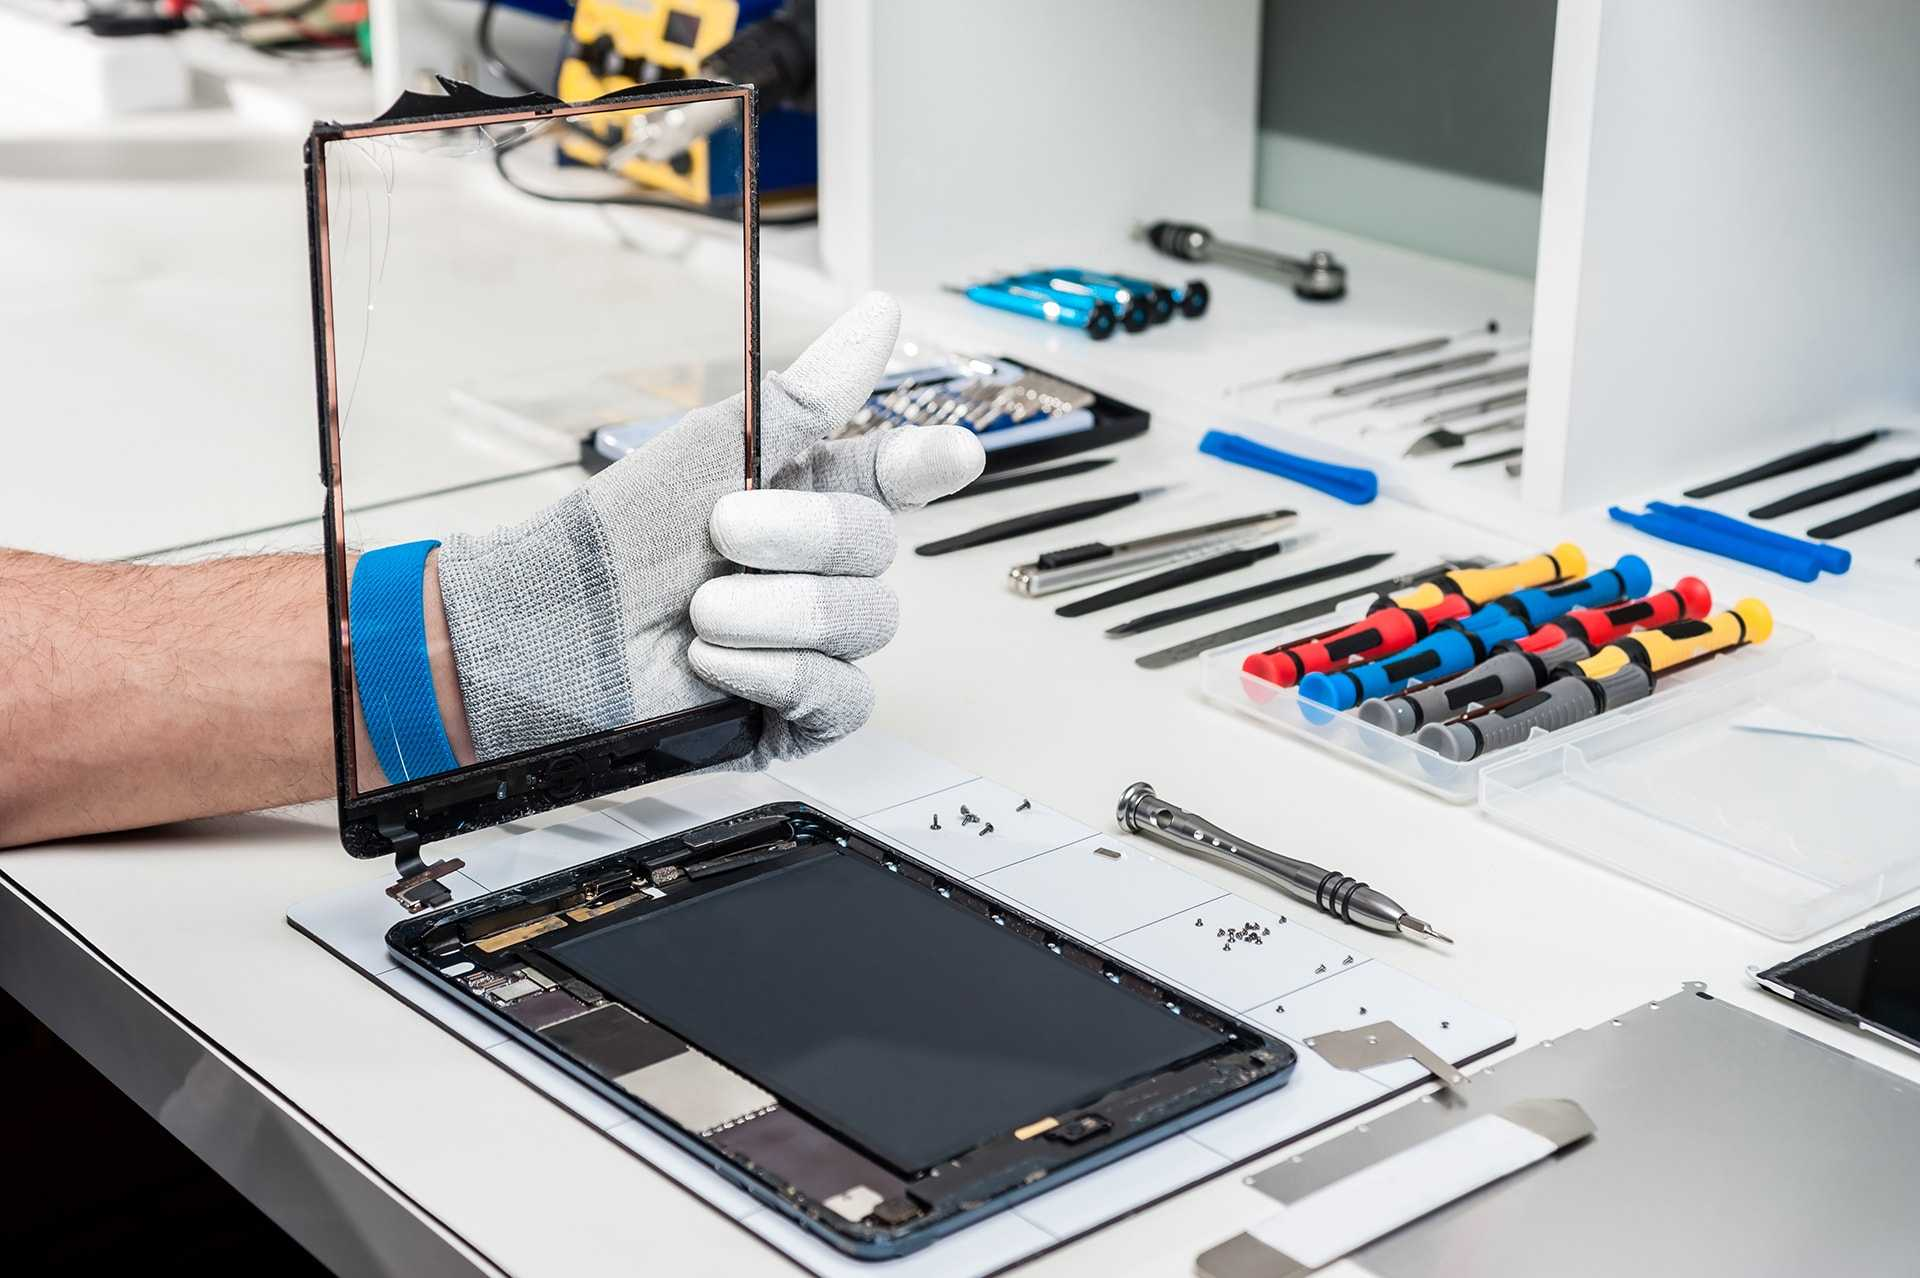 iPad Repair Mesa, AZ Best iPad Repair Service